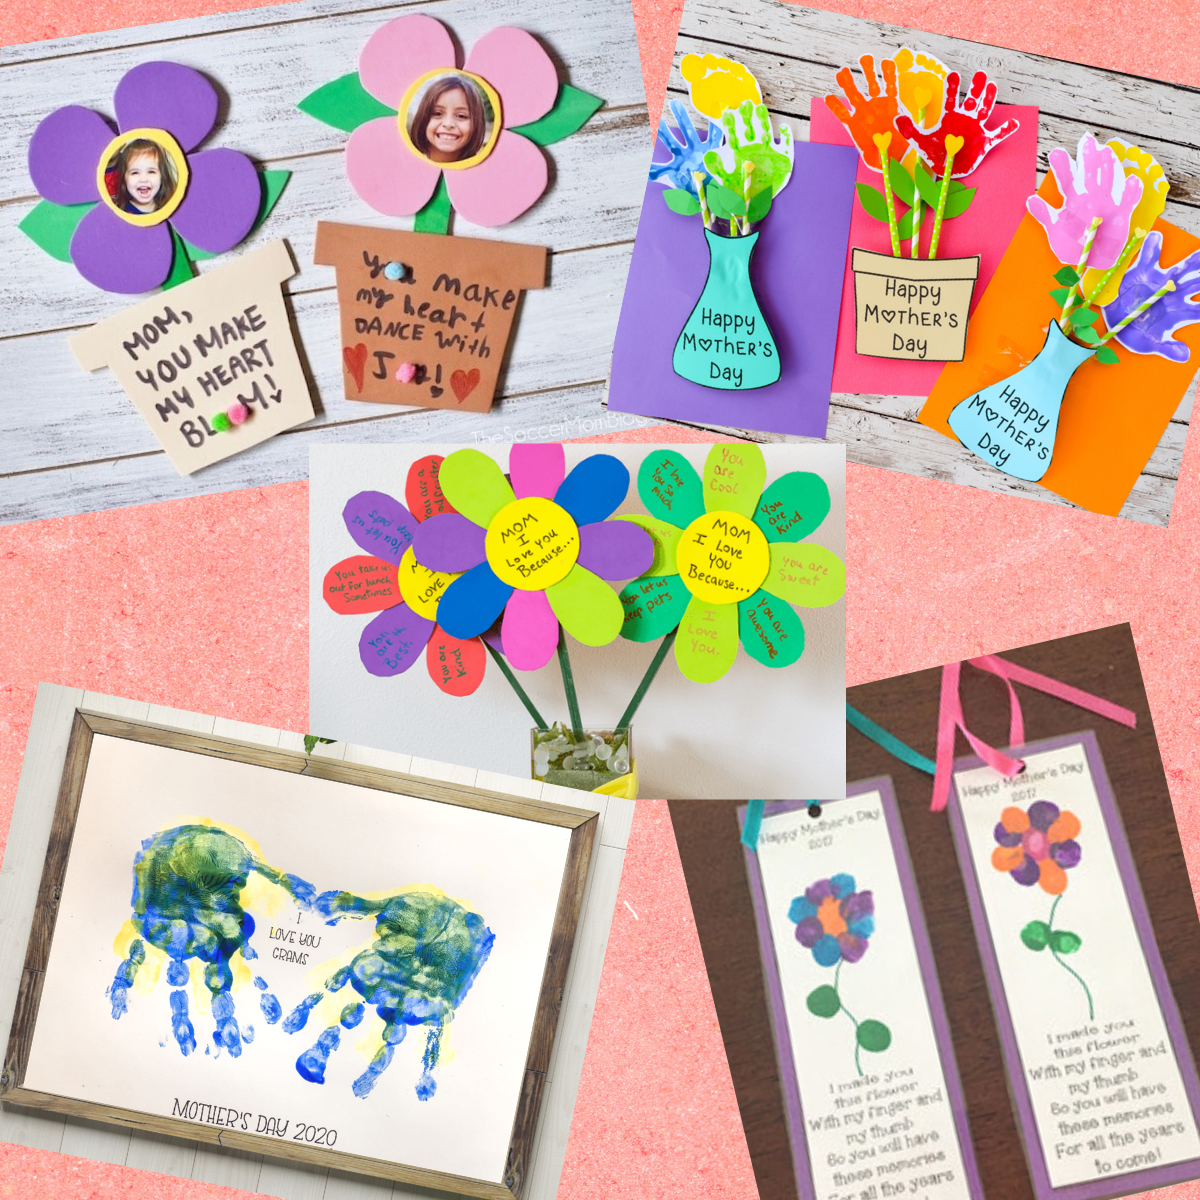 22 Adorable Mother's Day Gifts and Crafts From Your Little Ones